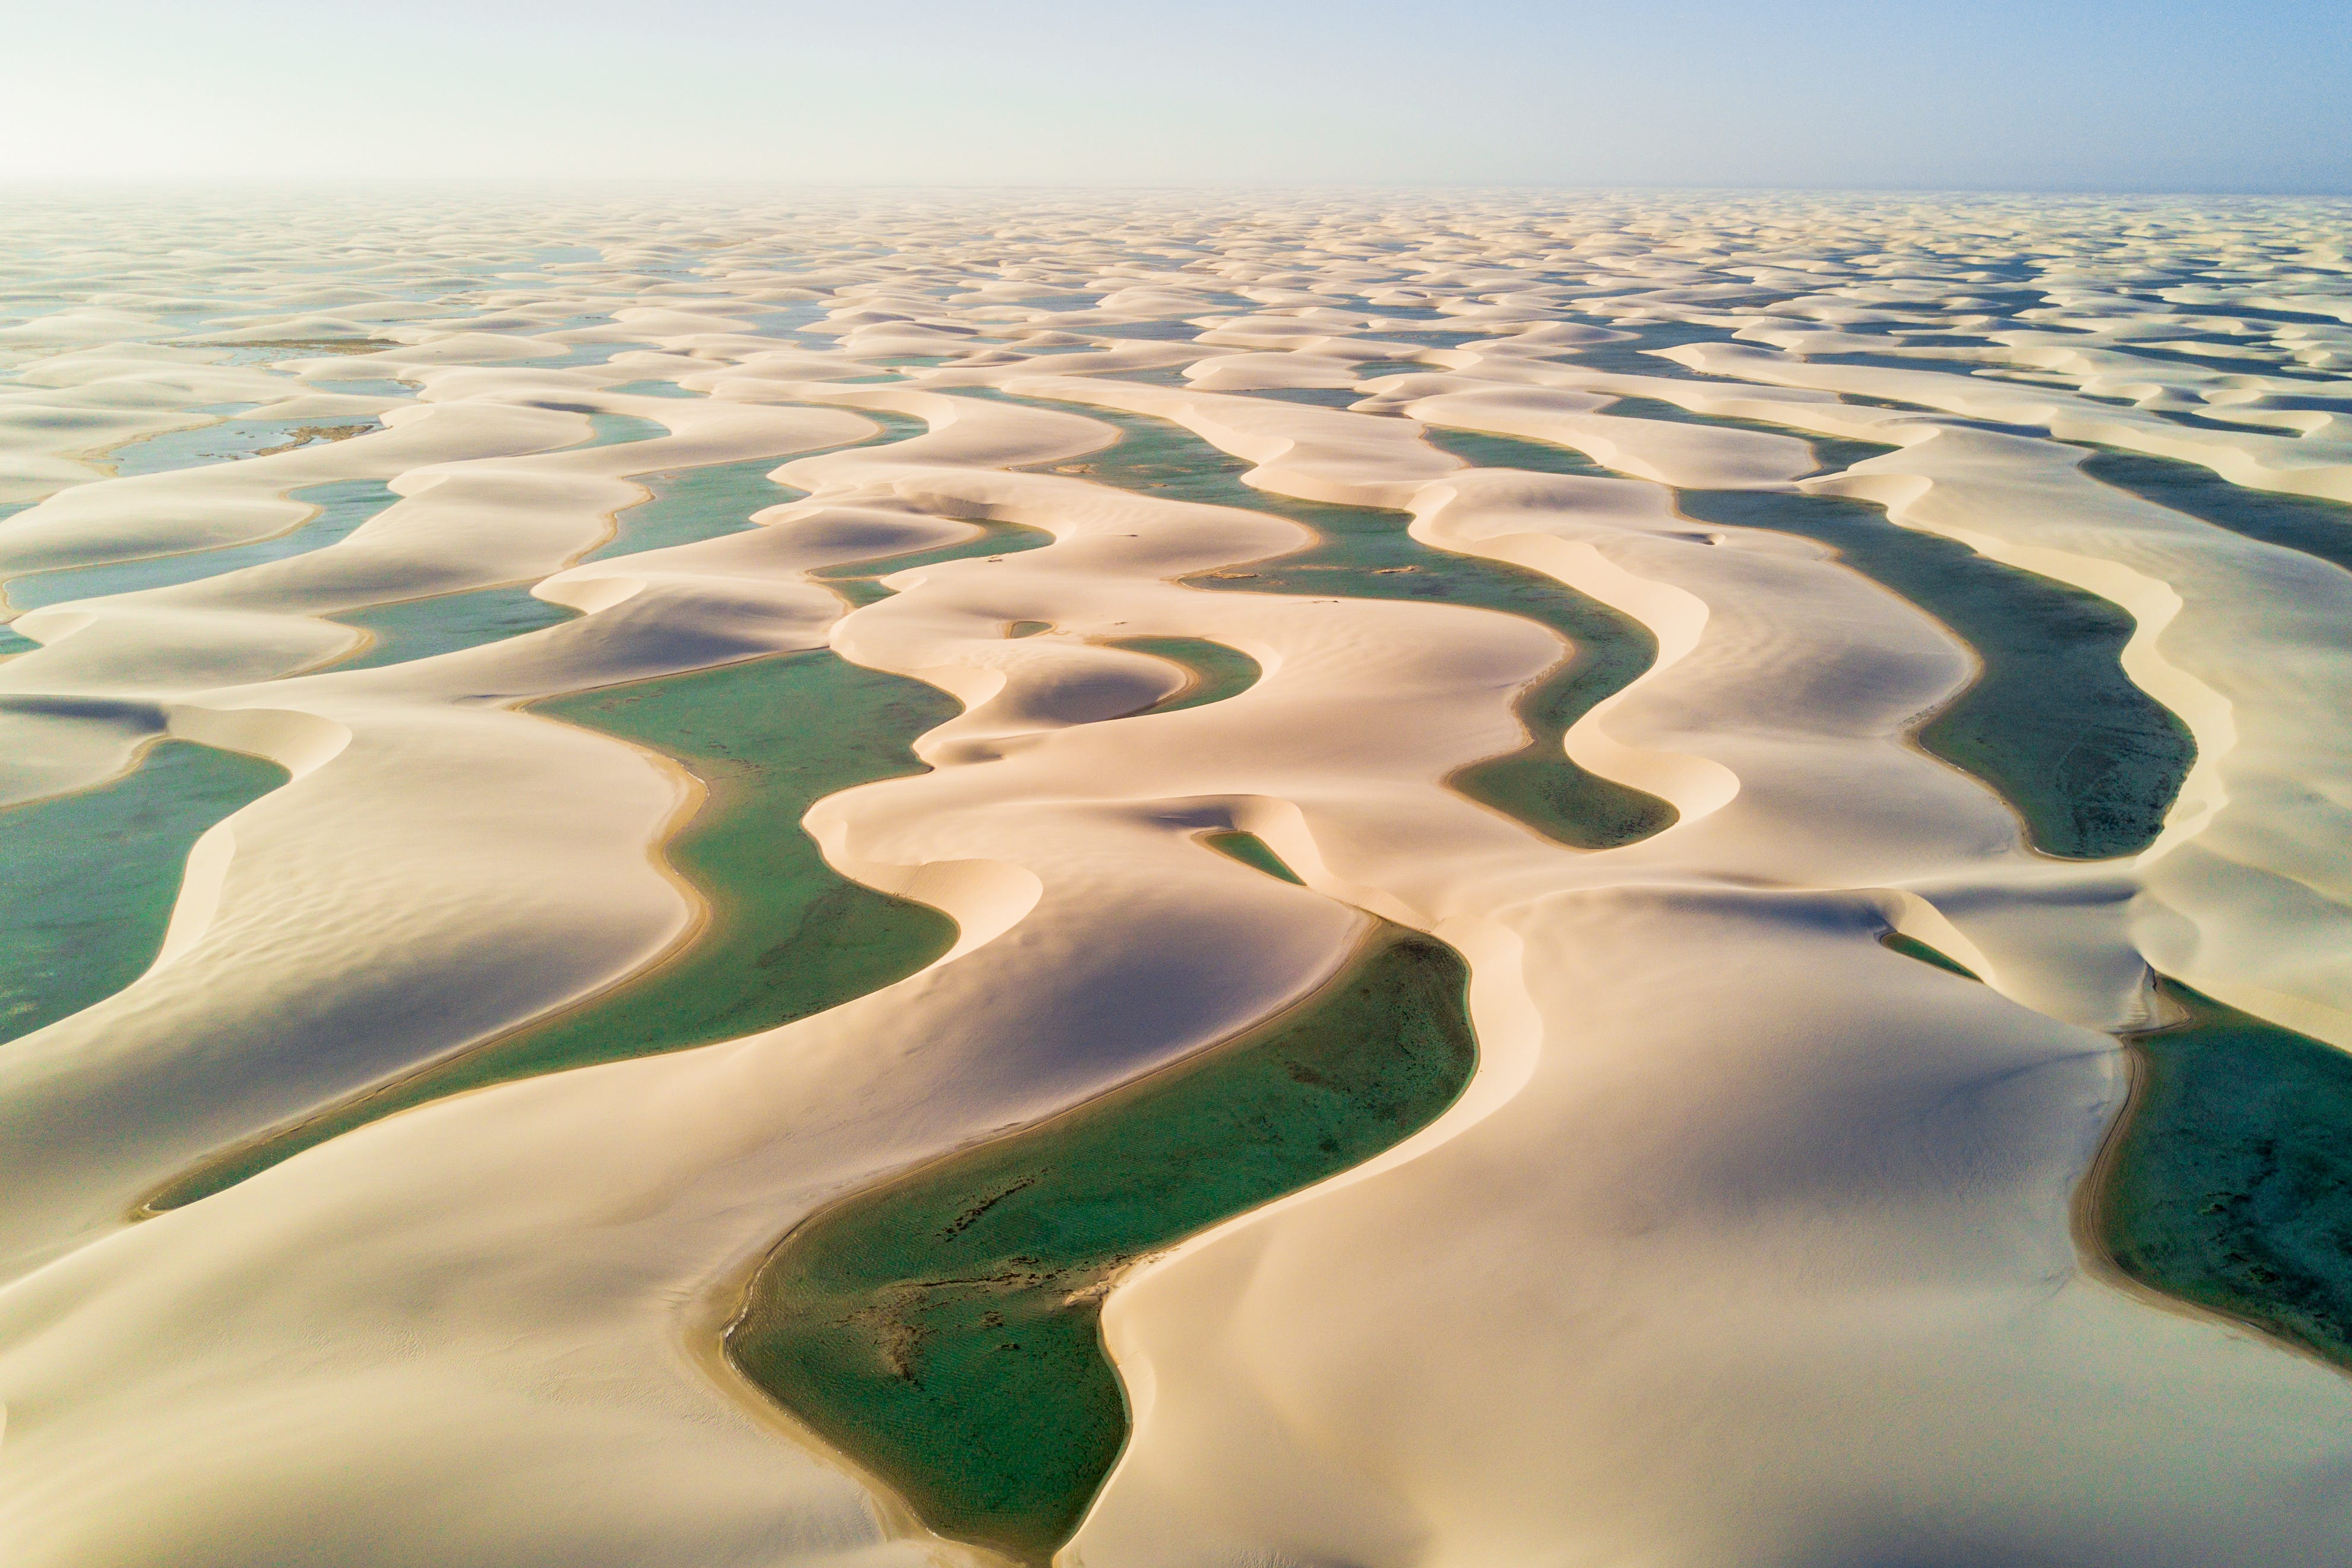 Slide 20 of 51: The blinding white sand dunes are inter-cut with rivers, pushing the thousands of tons of sand out into the Atlantic Ocean.